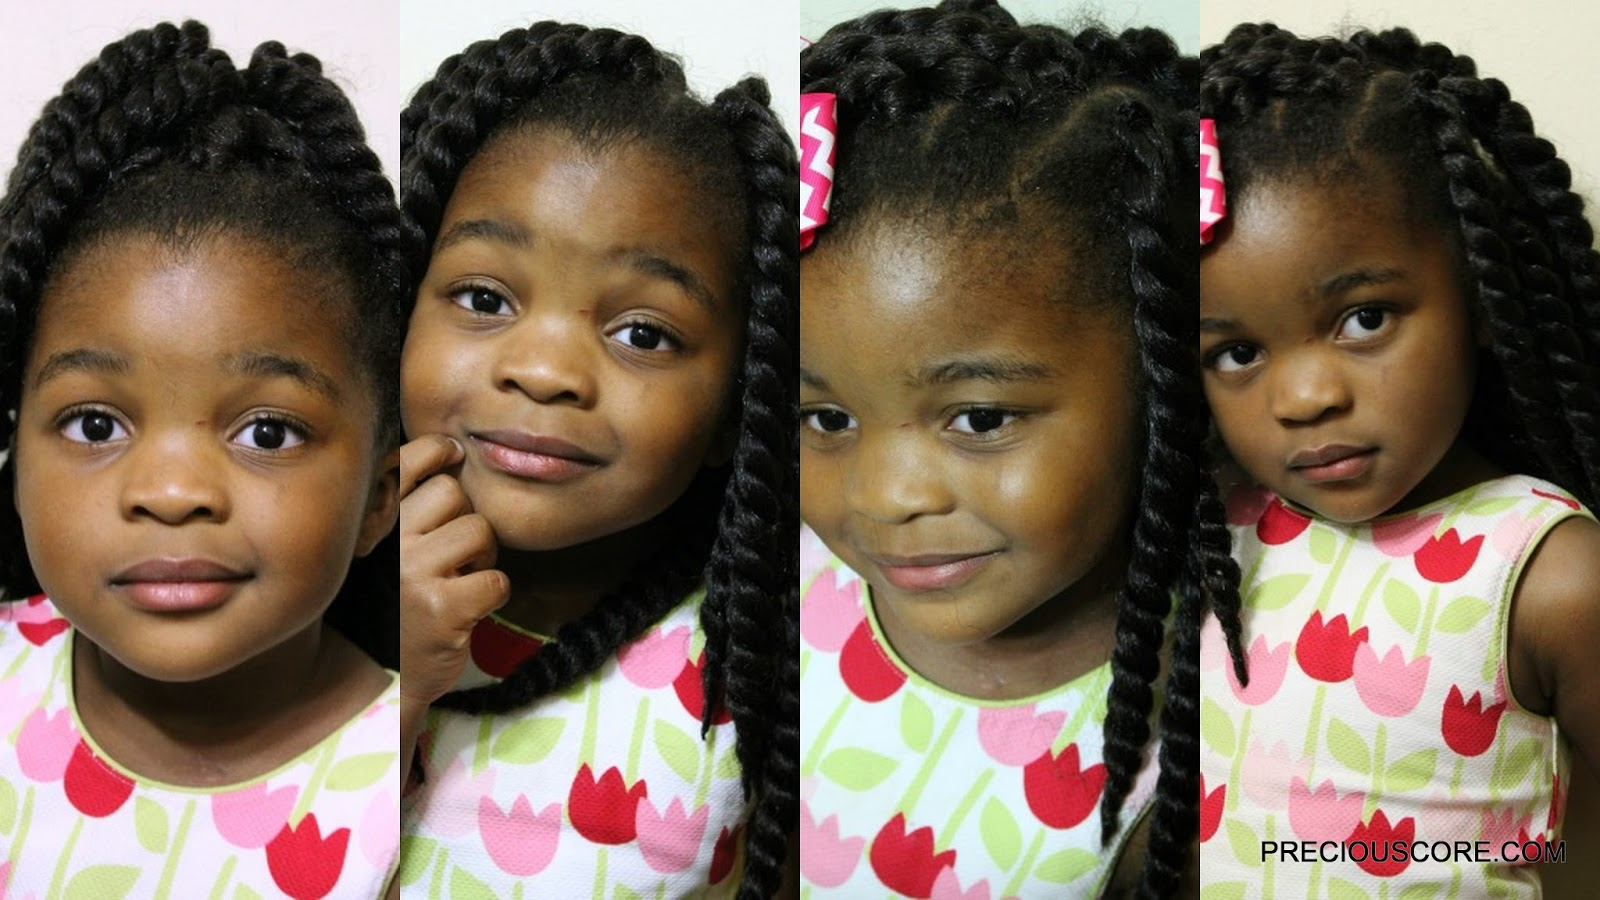 HOW TO DO CROCHET BRAIDS FOR KIDS